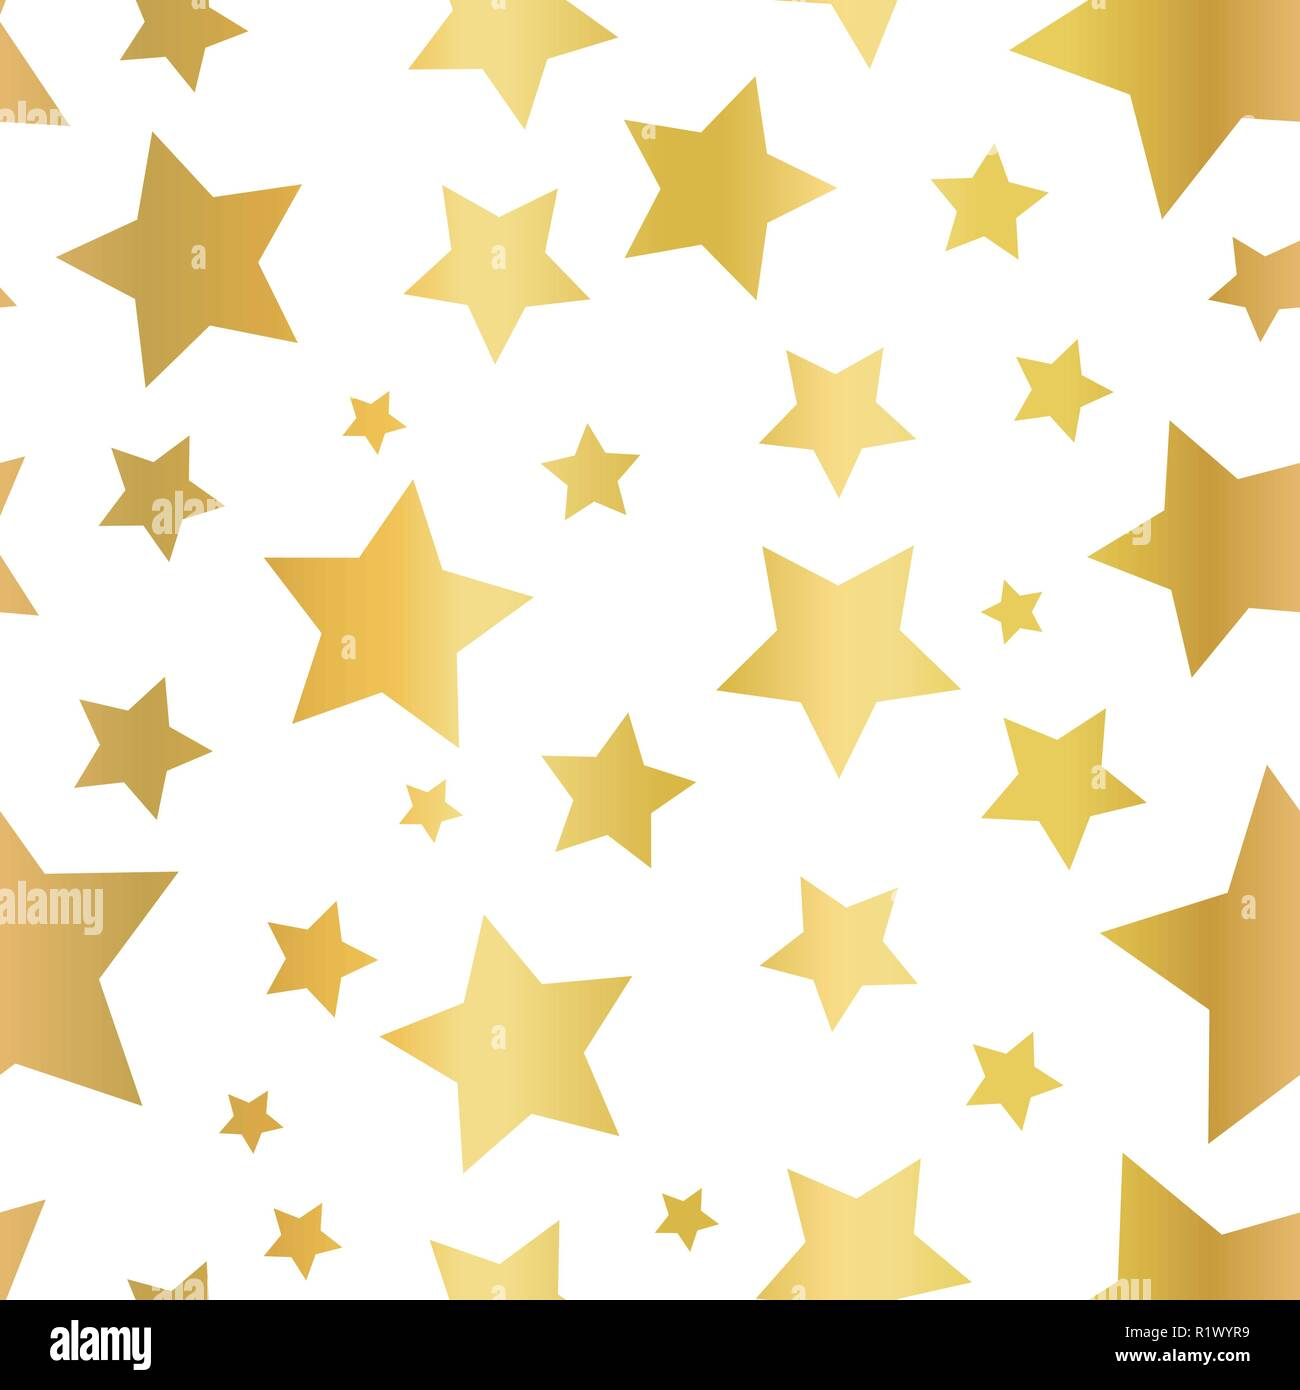 golden stars on white background gold night sky elegant and fancy design for web banner digital paper gift wrap card birthday wedding kids party